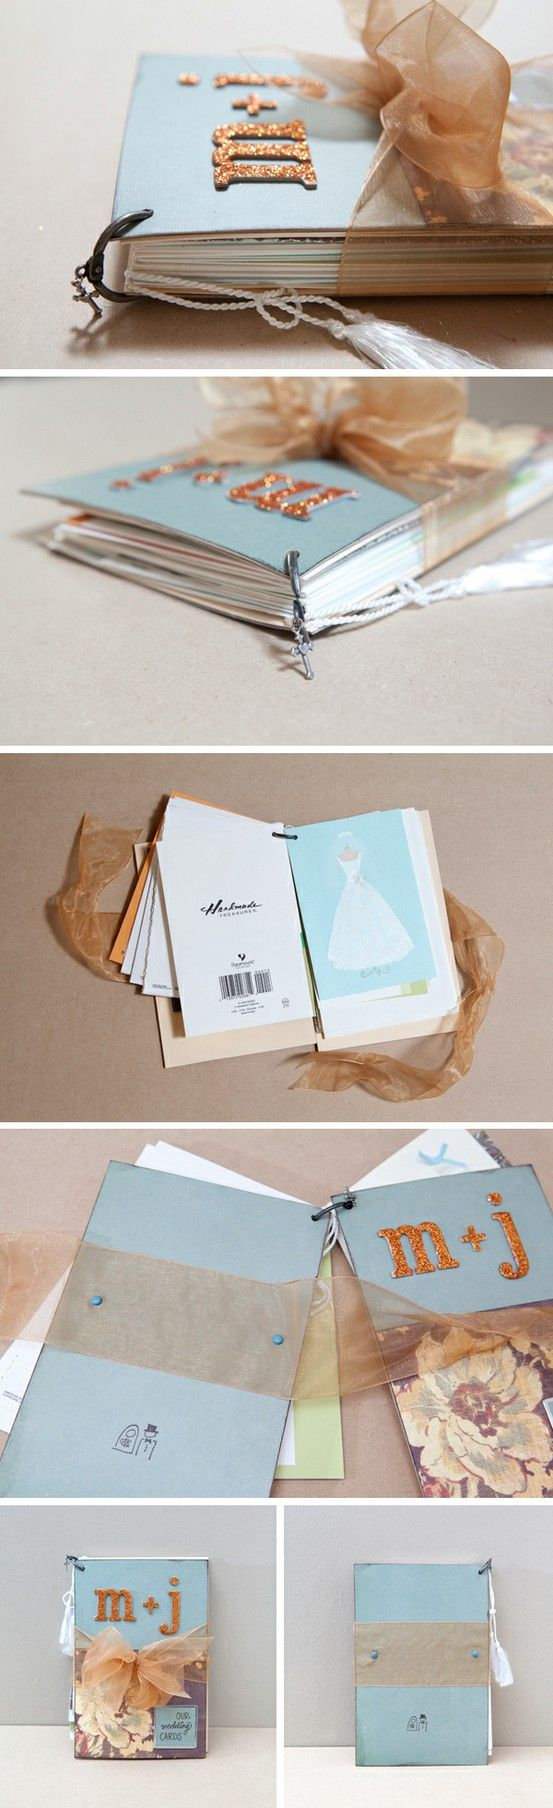 Love this idea for keeping Clairas birthday cards through out the years.